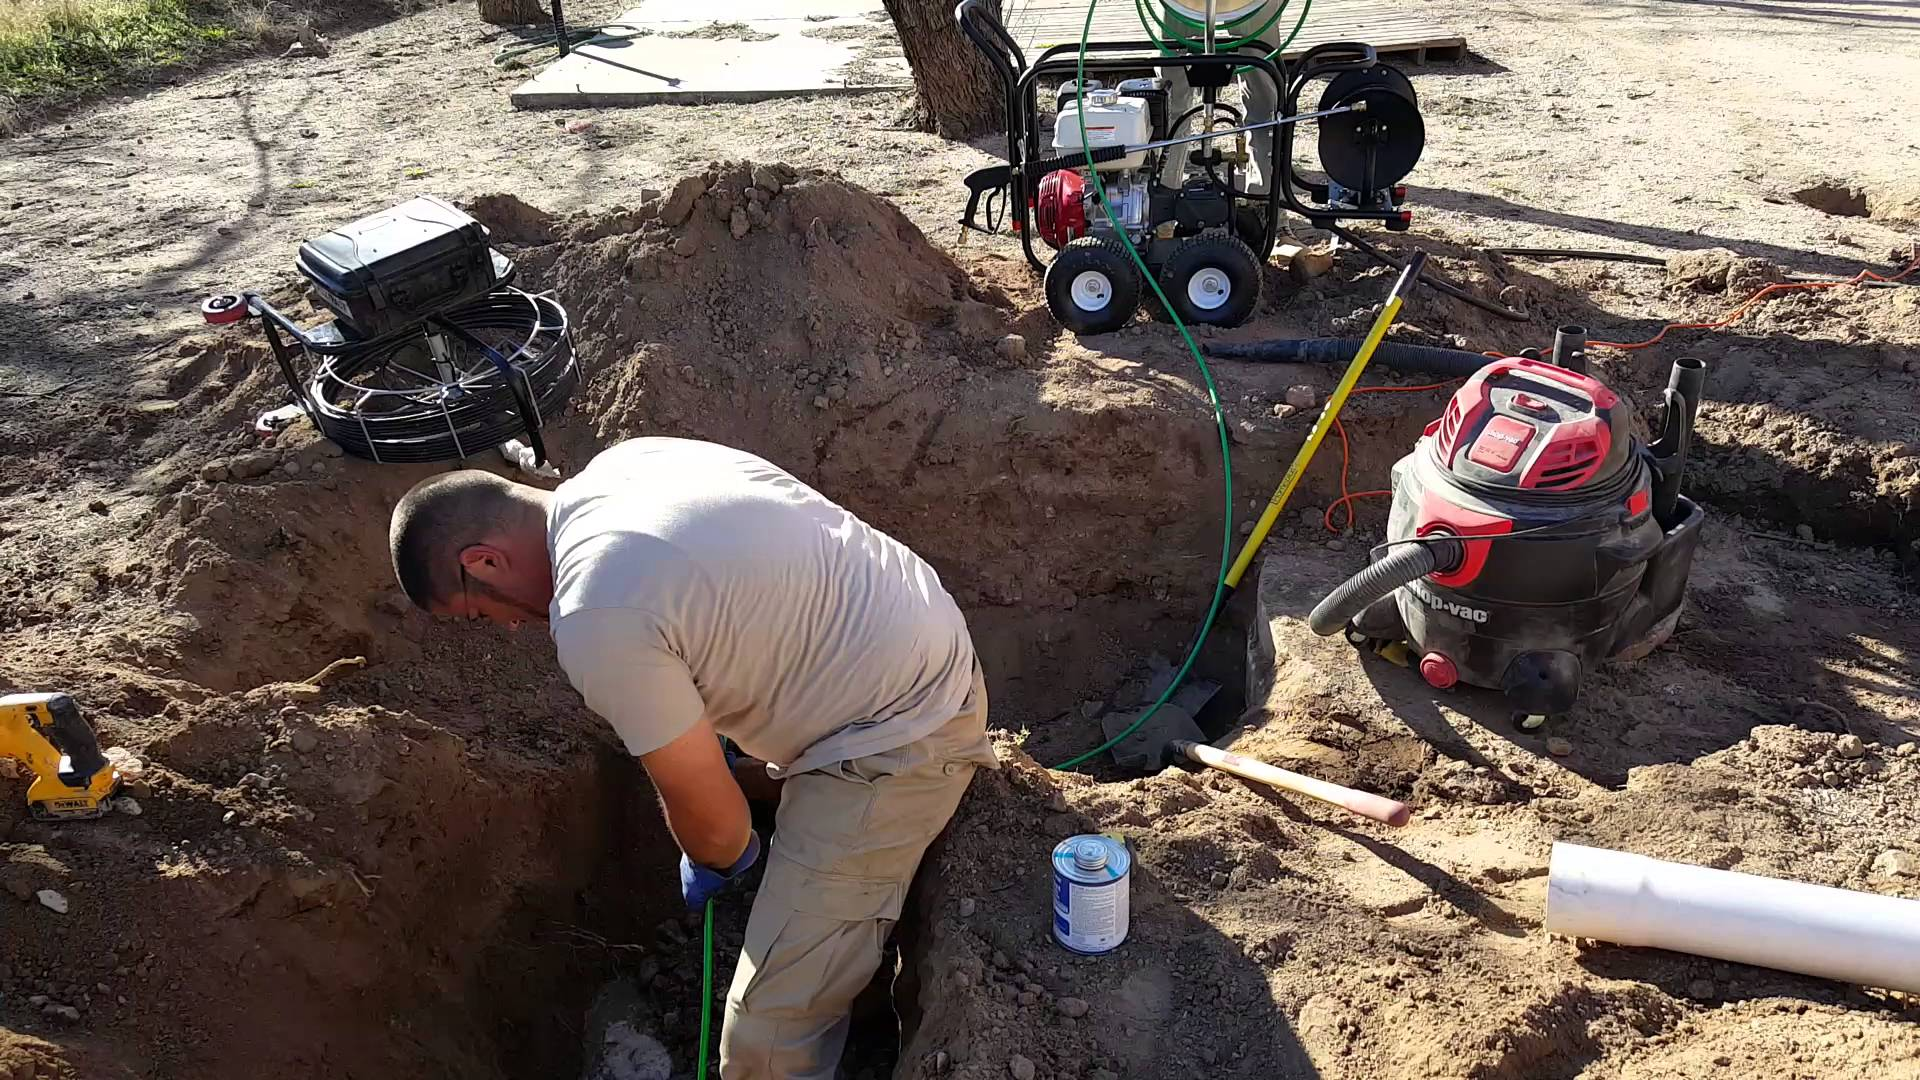 How often does septic tank need to be emptied-Houston TX Septic Tank Pumping, Installation, & Repairs-We offer Septic Service & Repairs, Septic Tank Installations, Septic Tank Cleaning, Commercial, Septic System, Drain Cleaning, Line Snaking, Portable Toilet, Grease Trap Pumping & Cleaning, Septic Tank Pumping, Sewage Pump, Sewer Line Repair, Septic Tank Replacement, Septic Maintenance, Sewer Line Replacement, Porta Potty Rentals, and more.